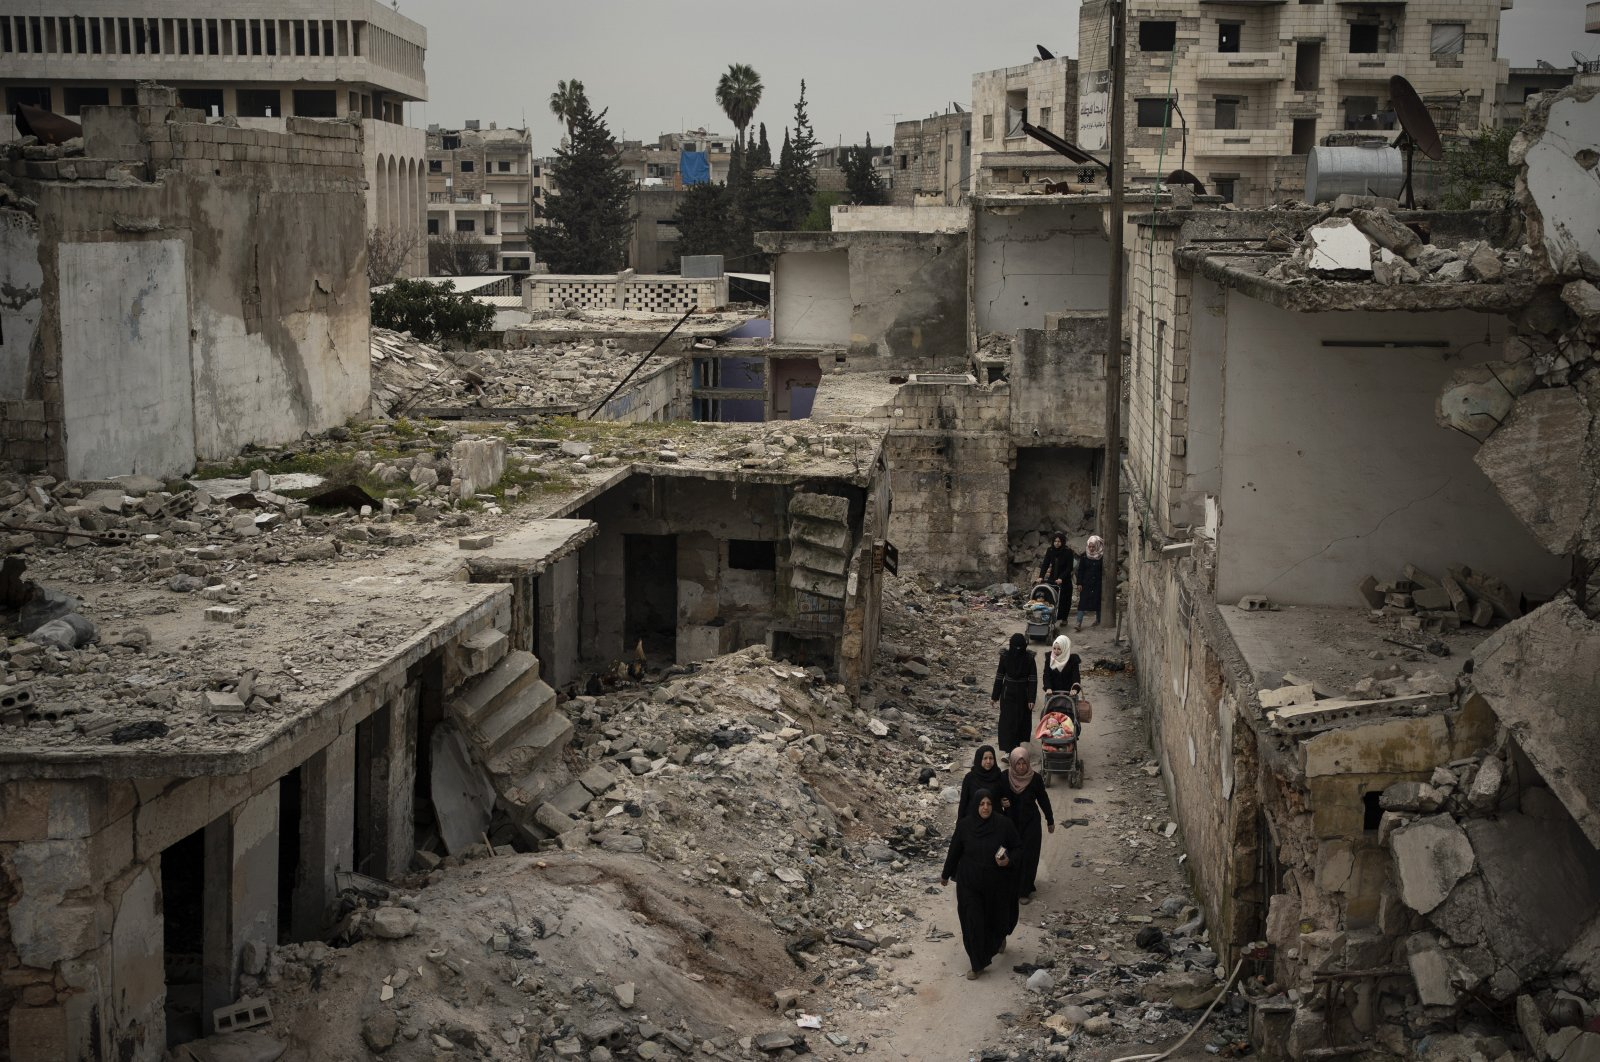 Women walk in a neighborhood heavily damaged by airstrikes in Idlib, Syria, March 12, 2020. (AP Photo)